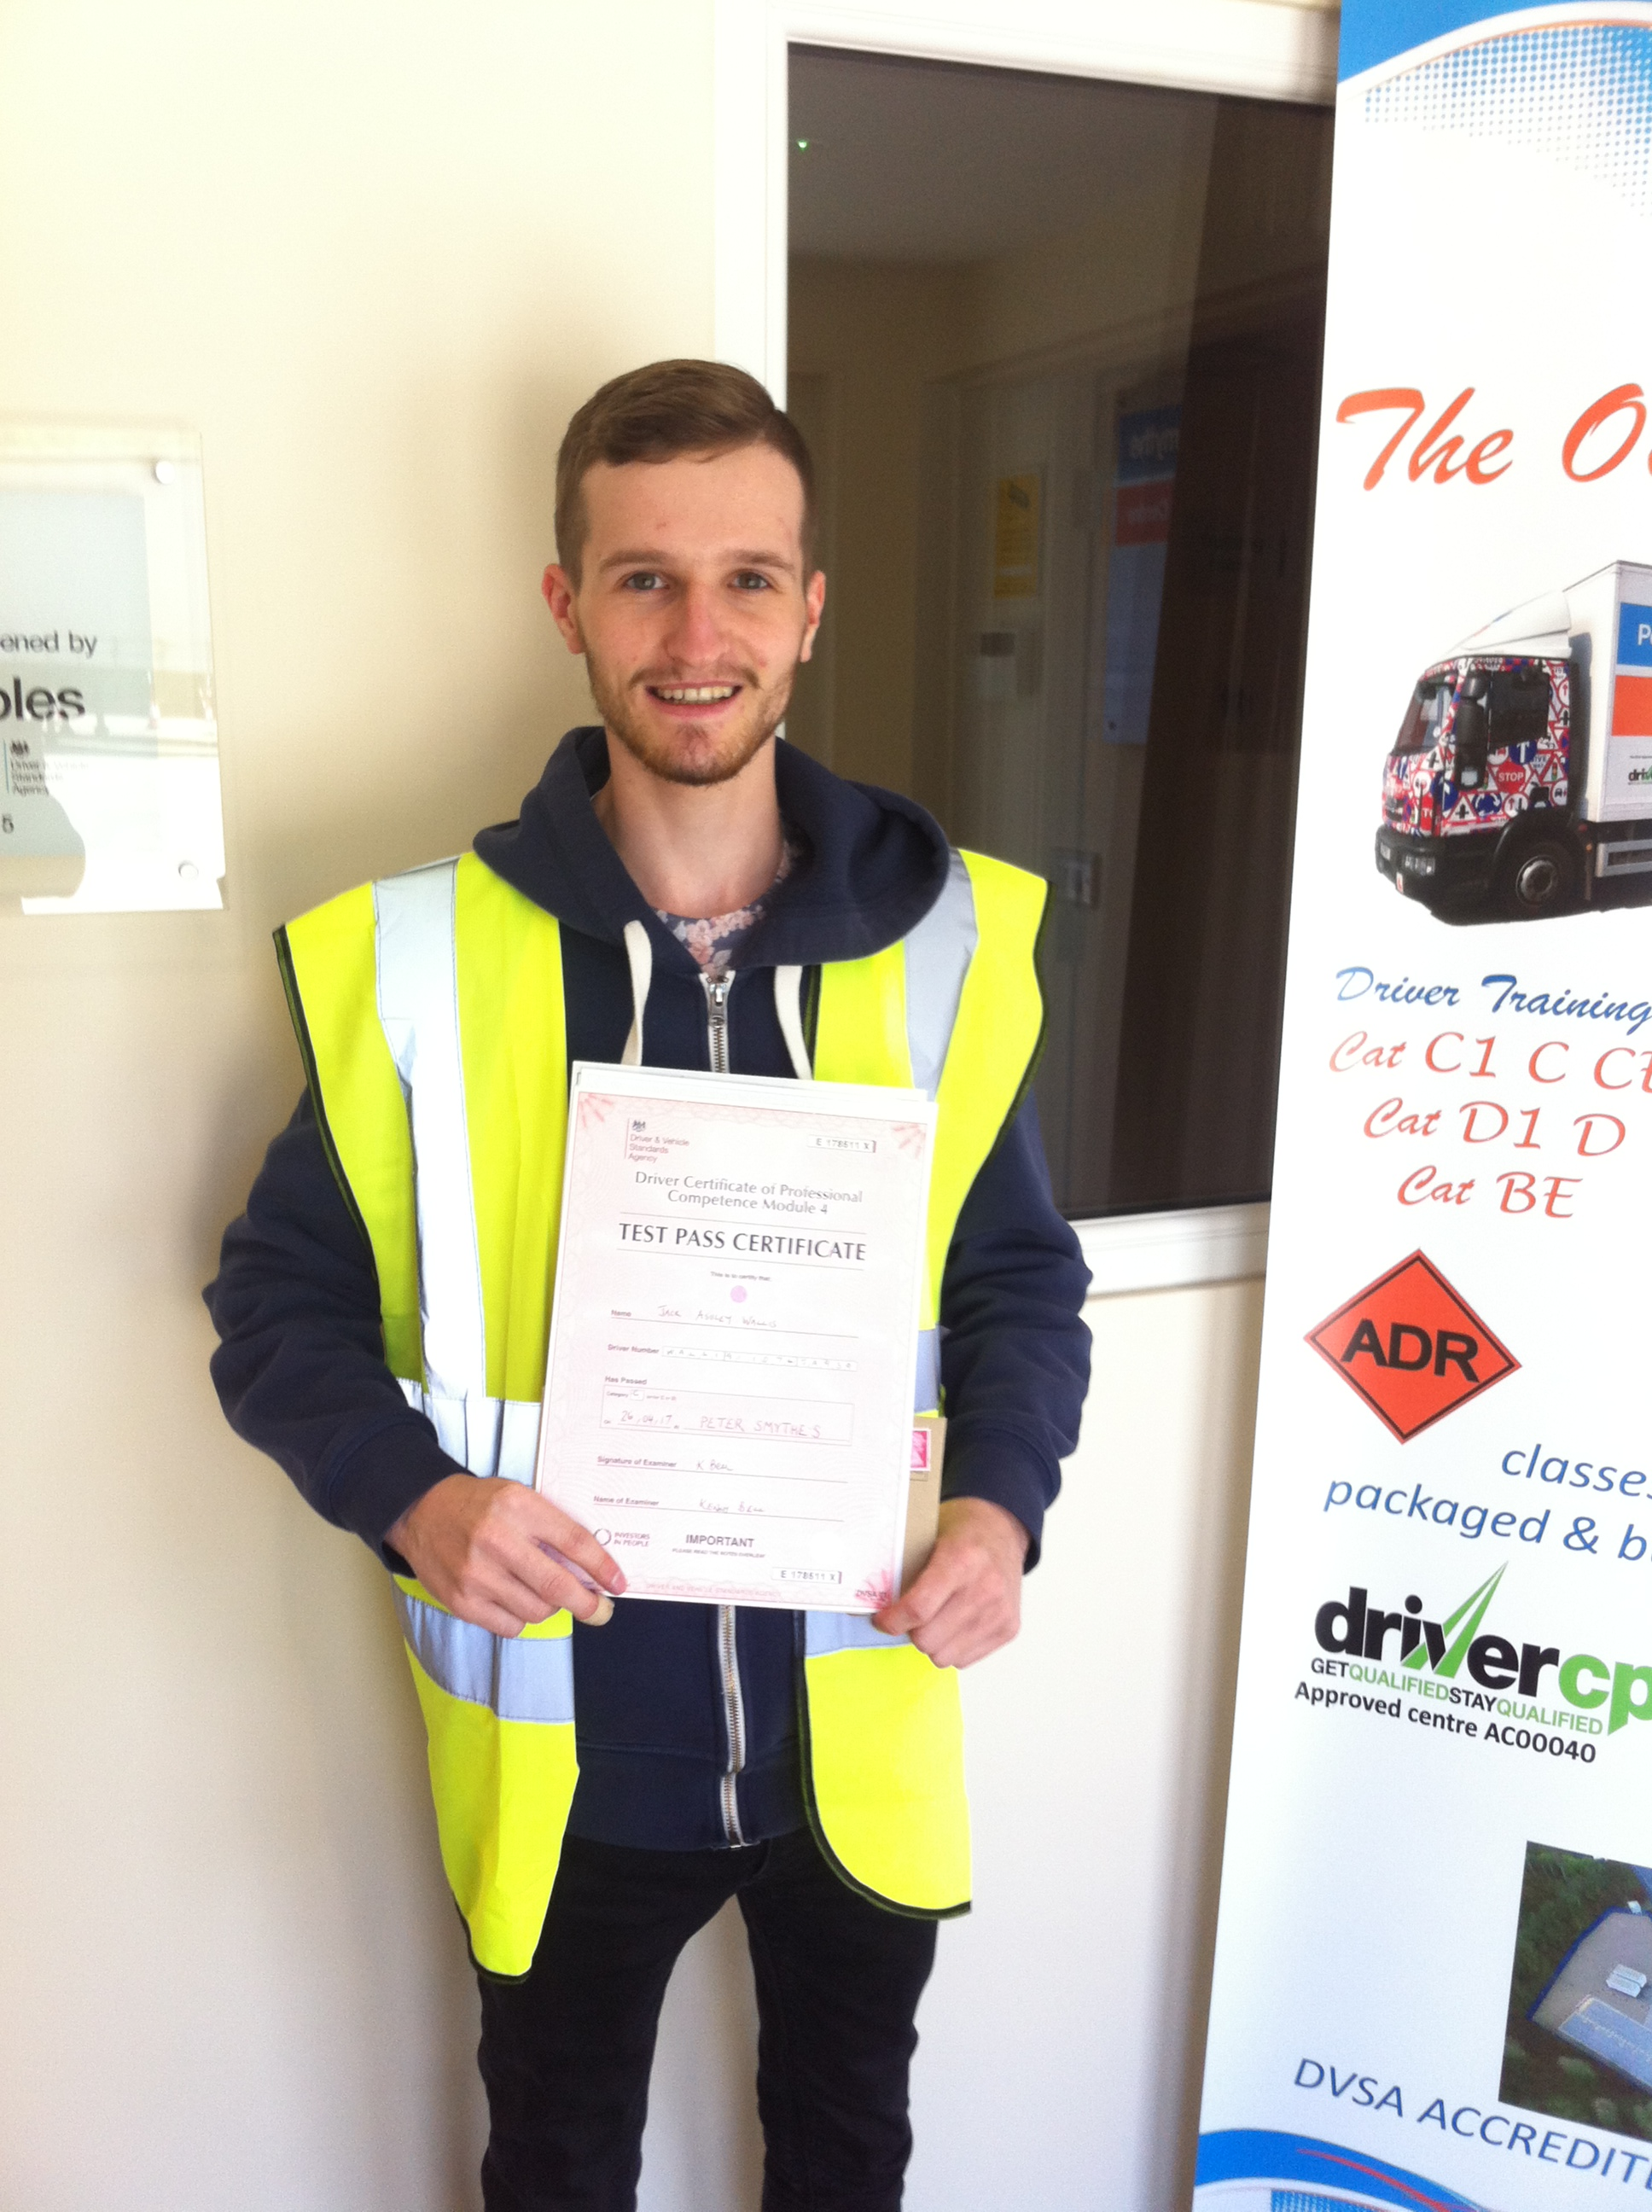 Jack Wallis from Nottingham PASSED CPC MOD 4